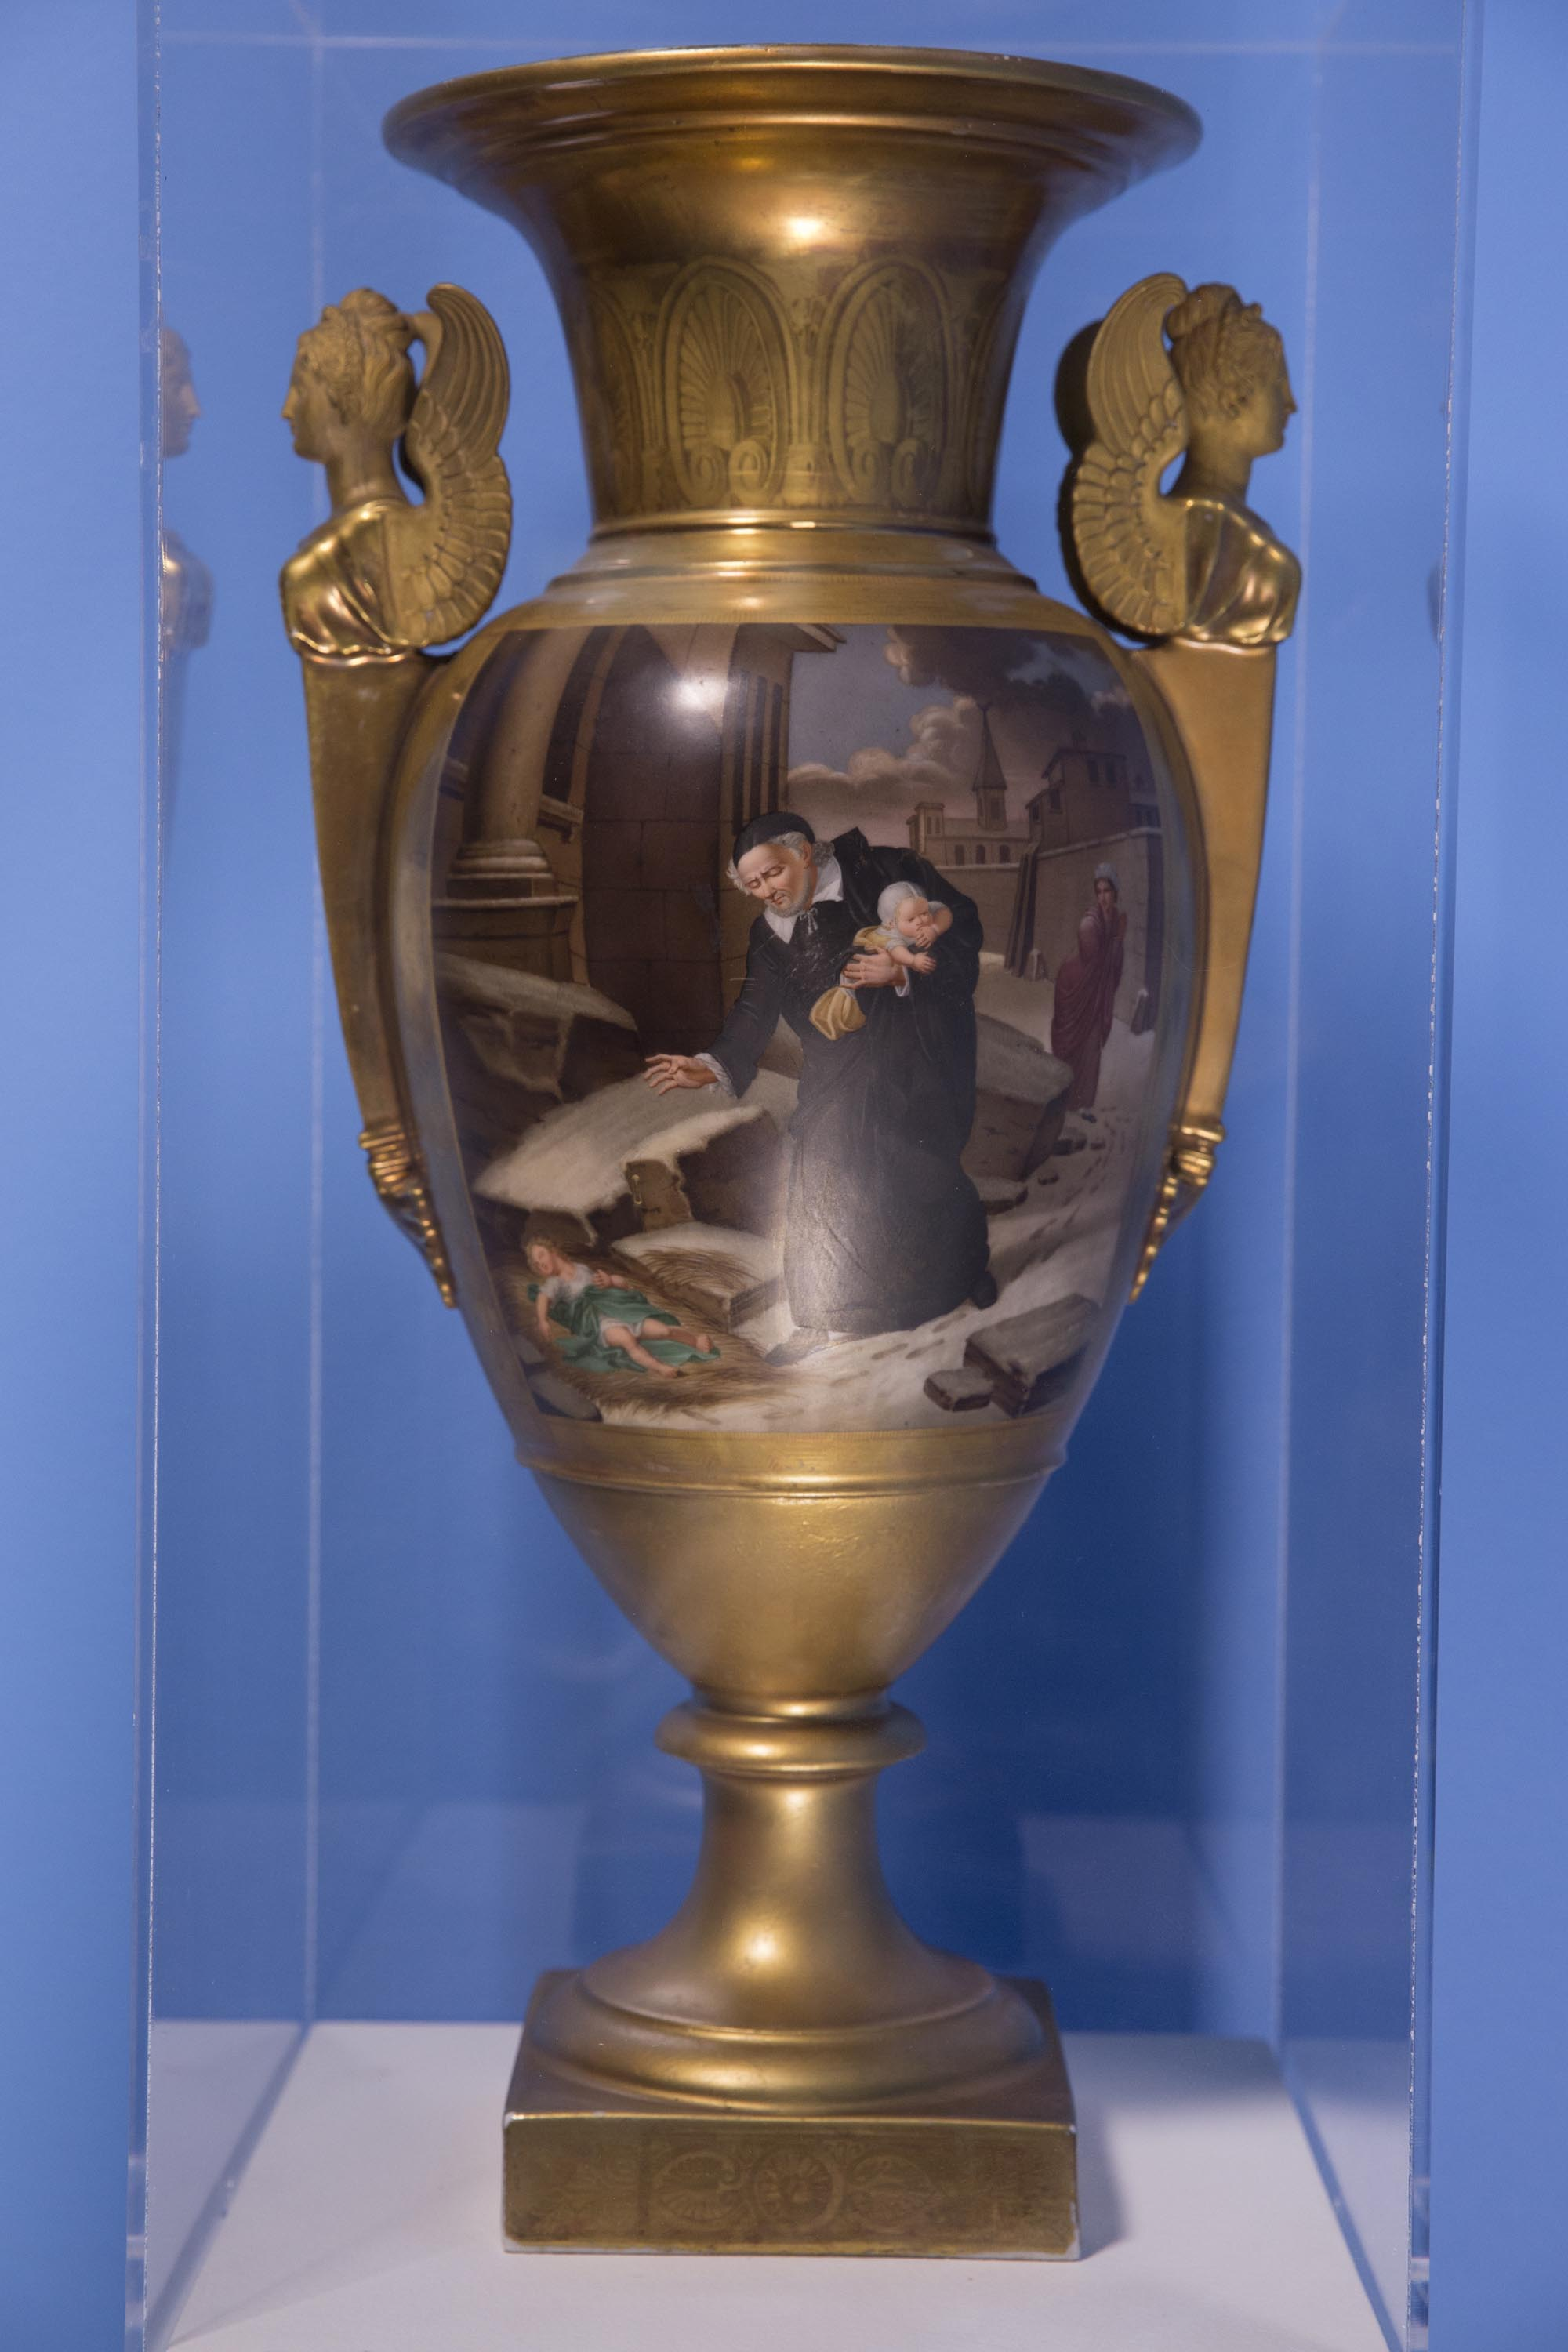 Gilded neoclassical urn, Sevres-type porcelain, with hand-painted copy of the iconic 1817 painting by Nicolas-Andre Monsiau (1754-1837) 22 x 6 x 10 in.